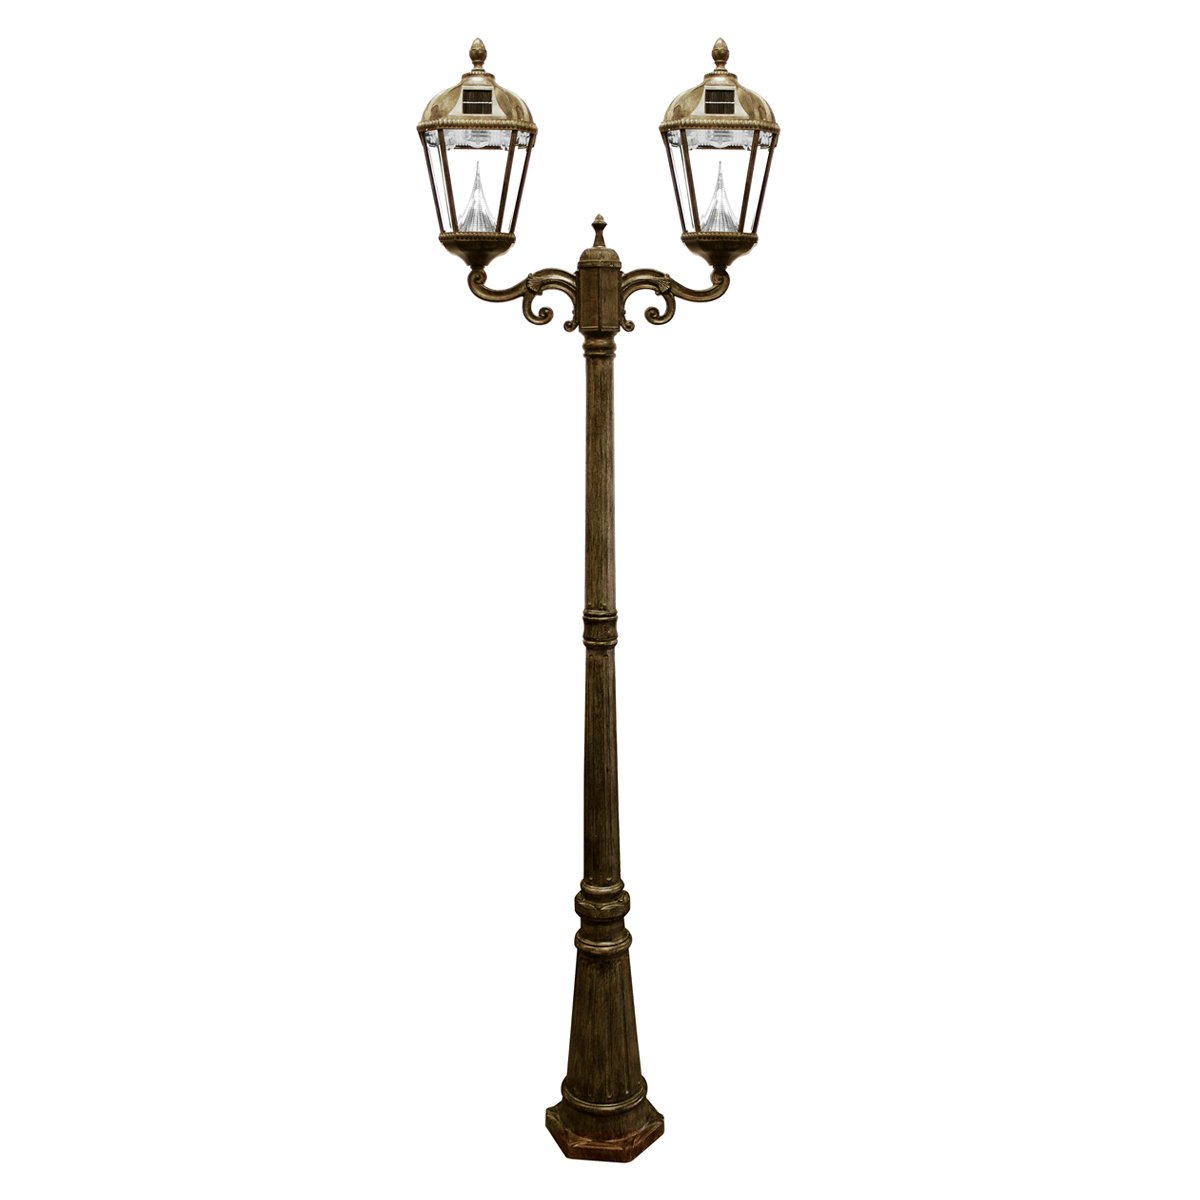 Gama Sonic Royal Solar Lamp Post and Double Lamp LED Light Fixture, 89-Inch Height, Weathered Bronze Finish #GS-98D by Gama Sonic